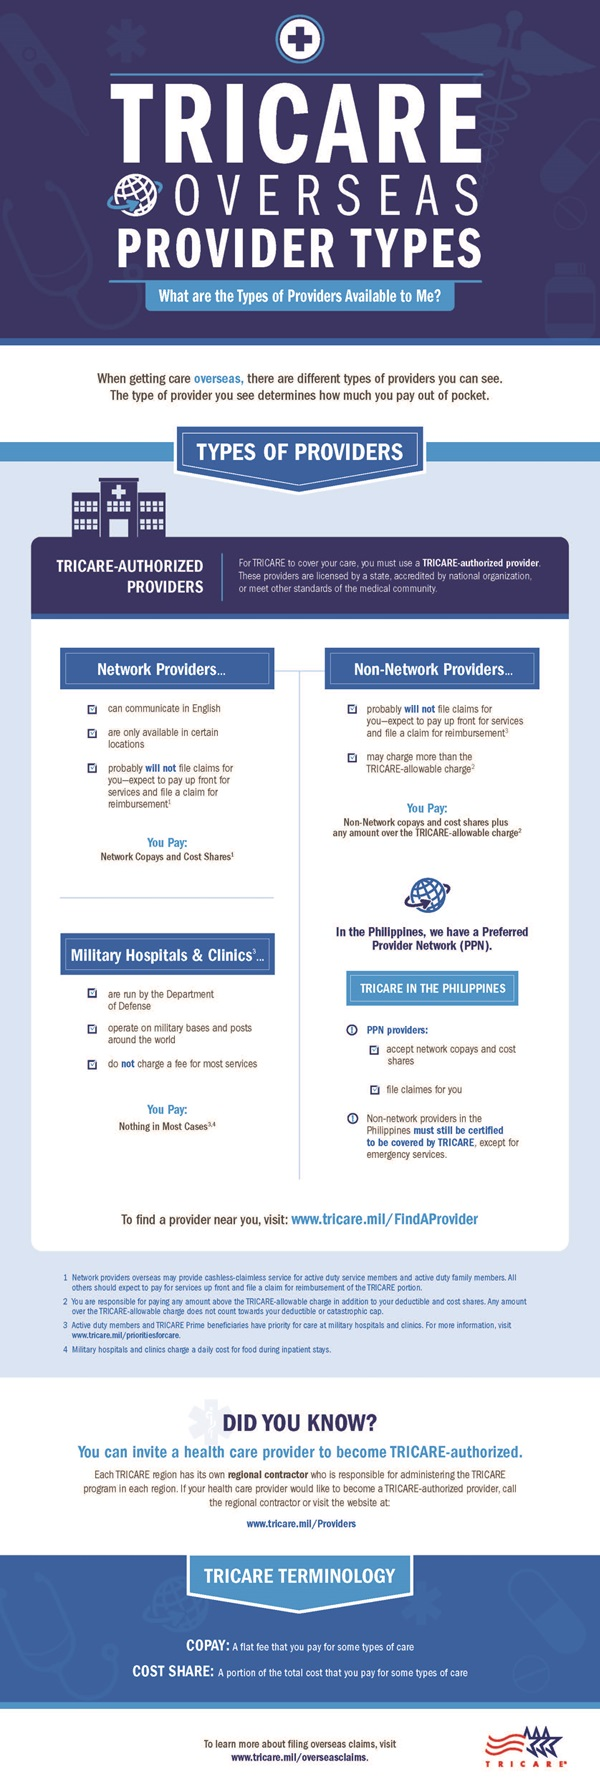 TRICARE Overseas Provider Infographic